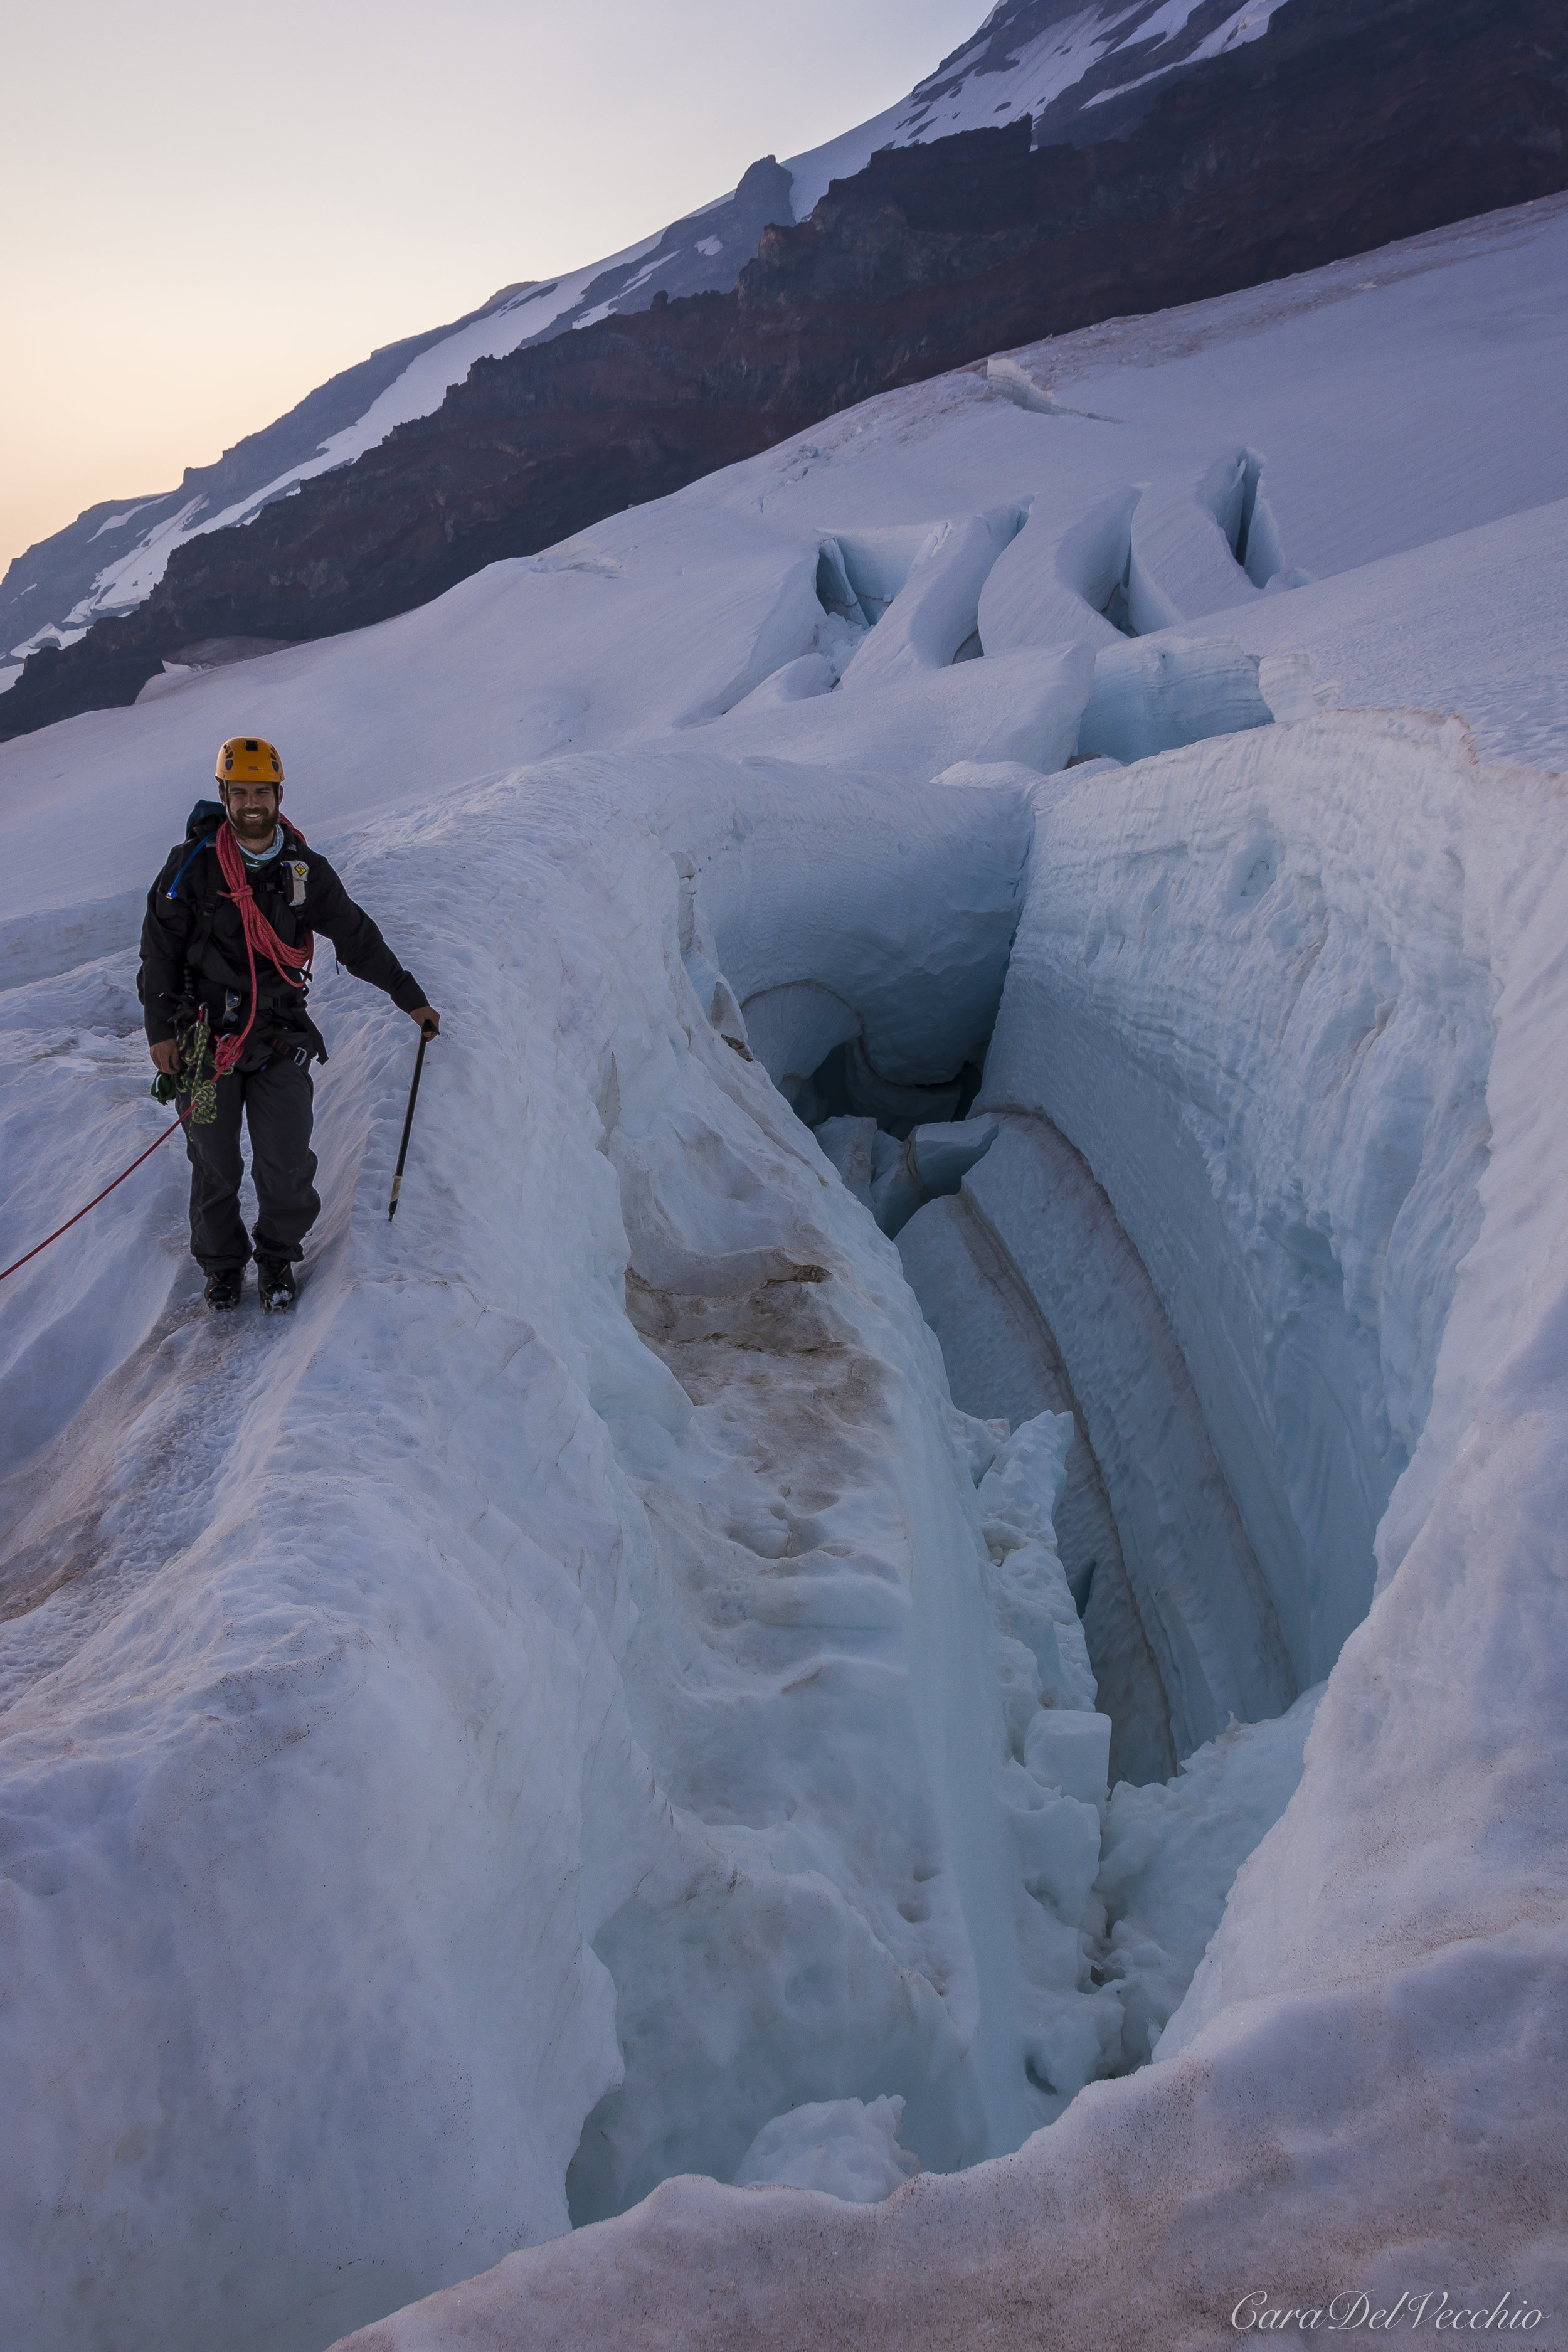 Adam beside a crevasse with more behind him. Note the striation of the glacier.